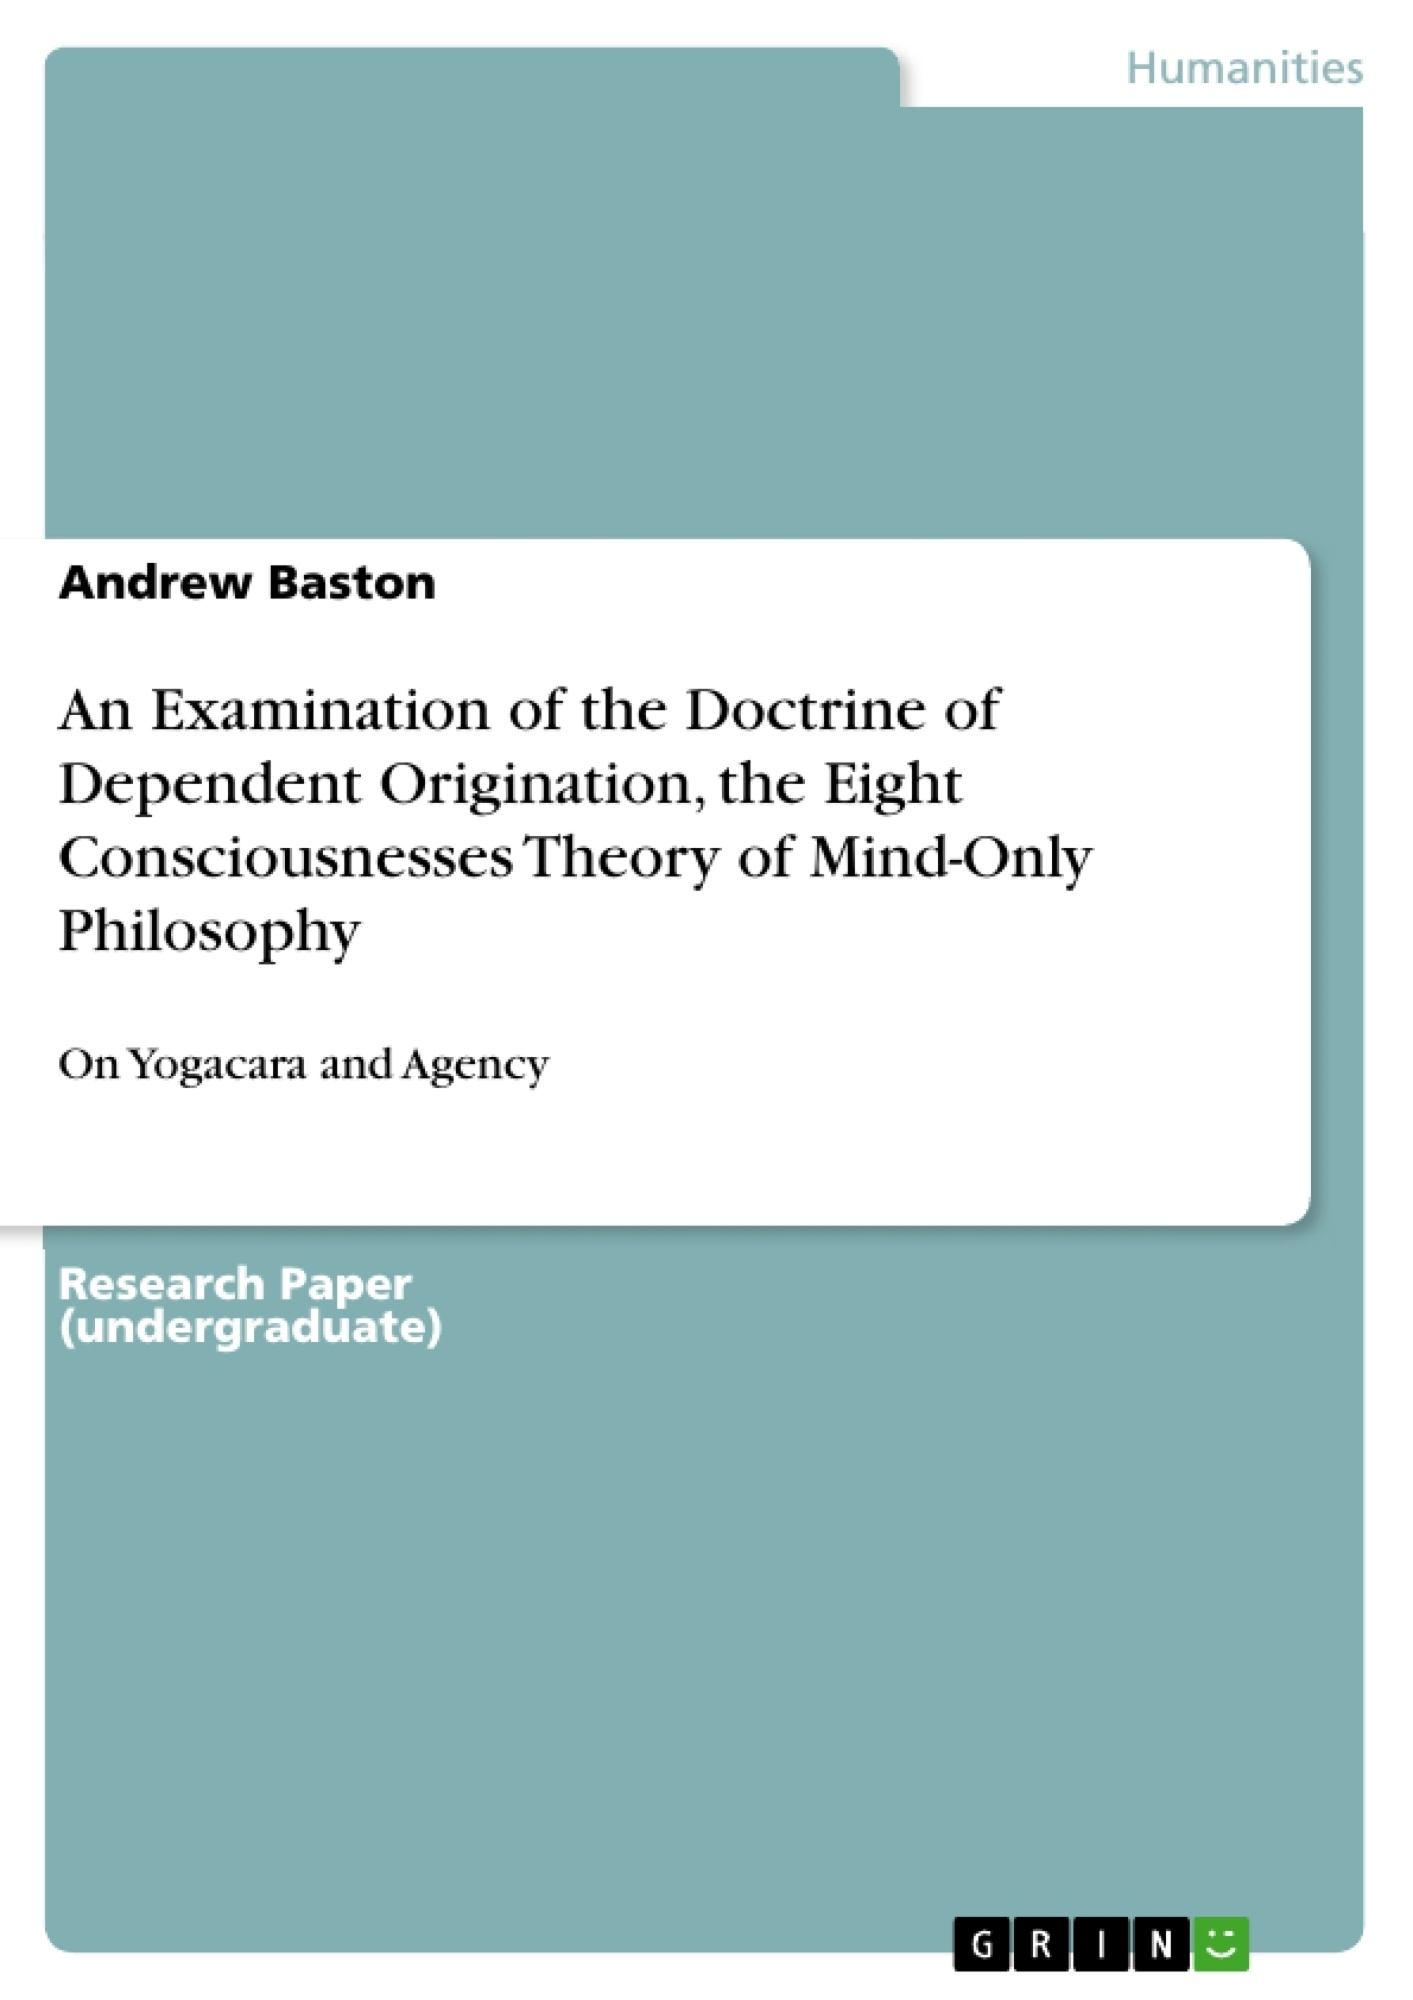 Title: An Examination of the Doctrine of Dependent Origination, the Eight Consciousnesses Theory of Mind-Only Philosophy